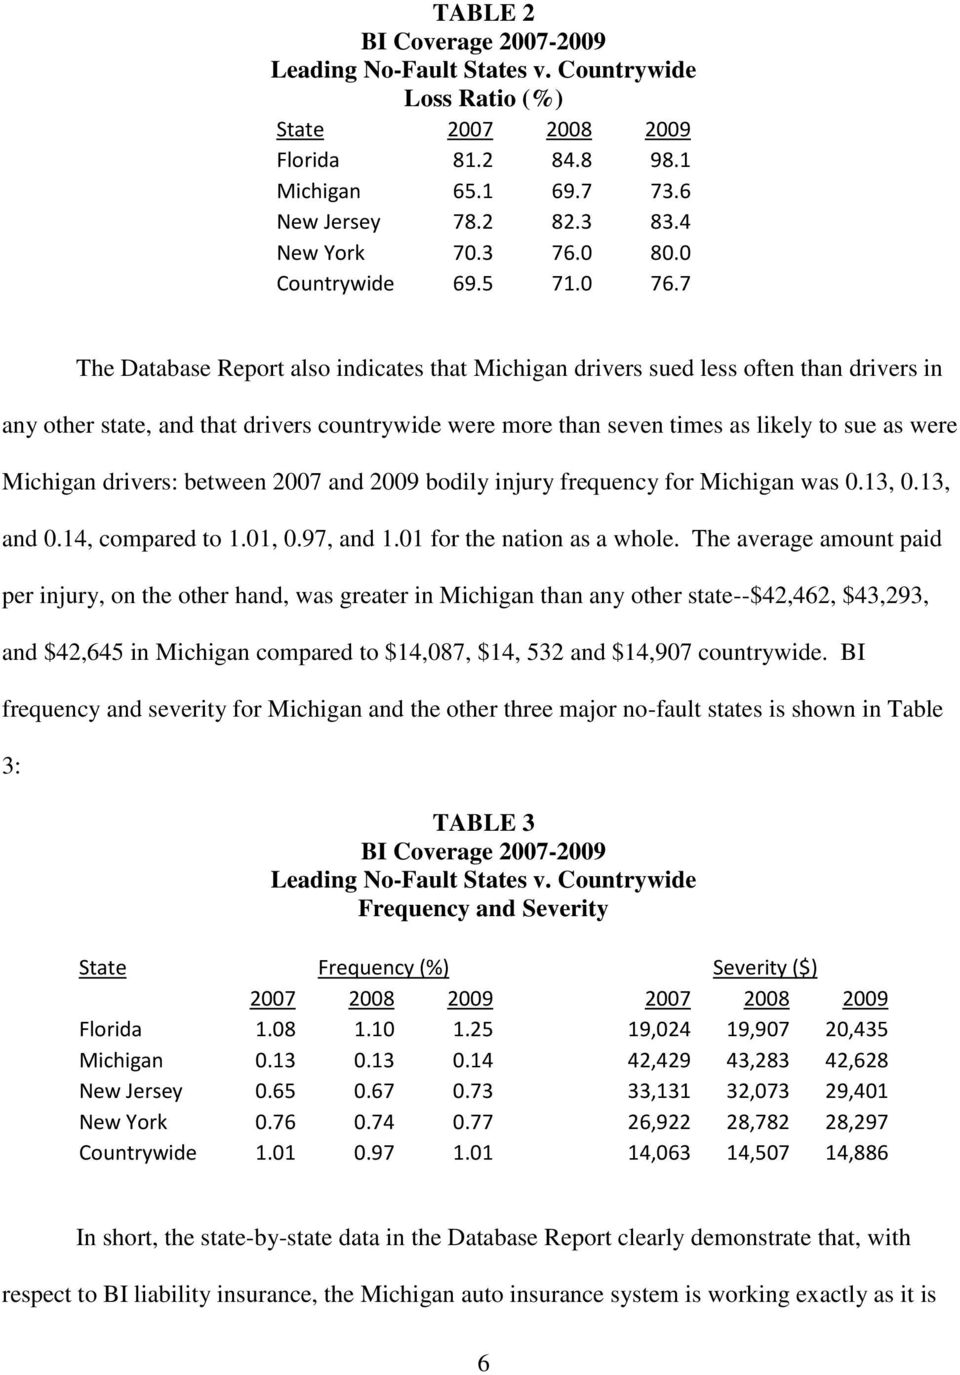 7 The Database Report also indicates that Michigan drivers sued less often than drivers in any other state, and that drivers countrywide were more than seven times as likely to sue as were Michigan